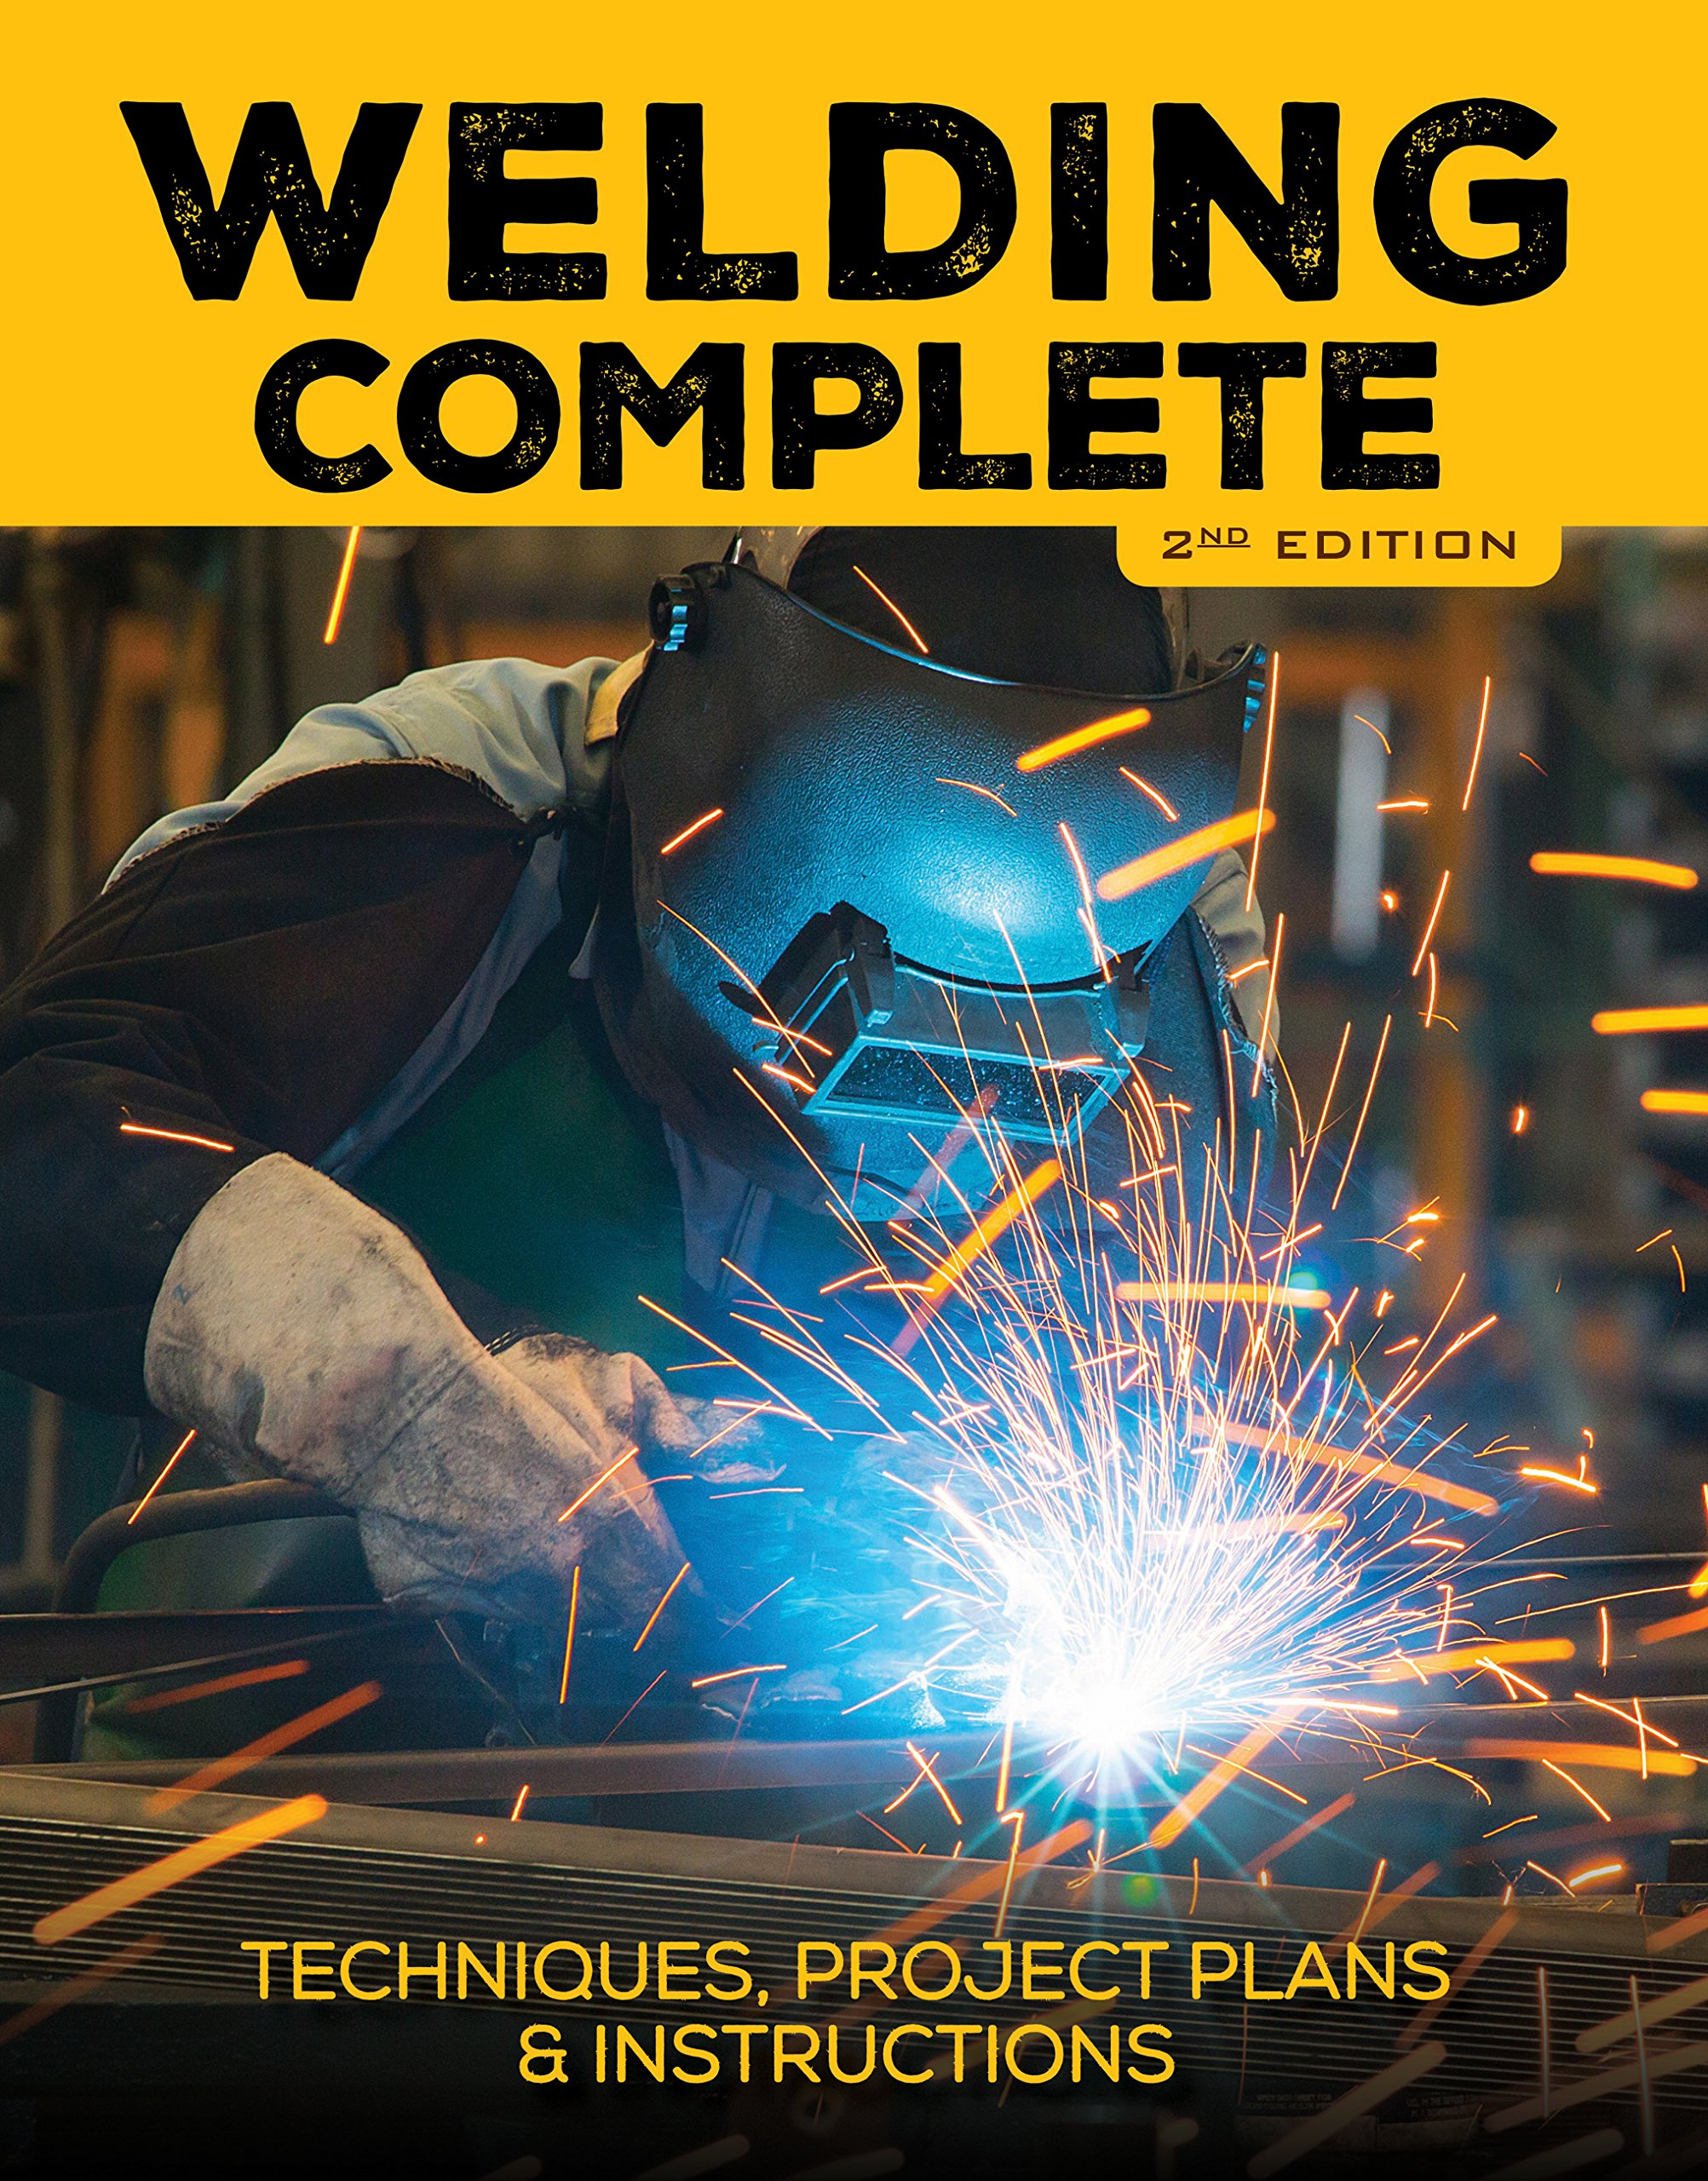 Welding Complete, 2nd Edition: Techniques, Project Plans & Instructions